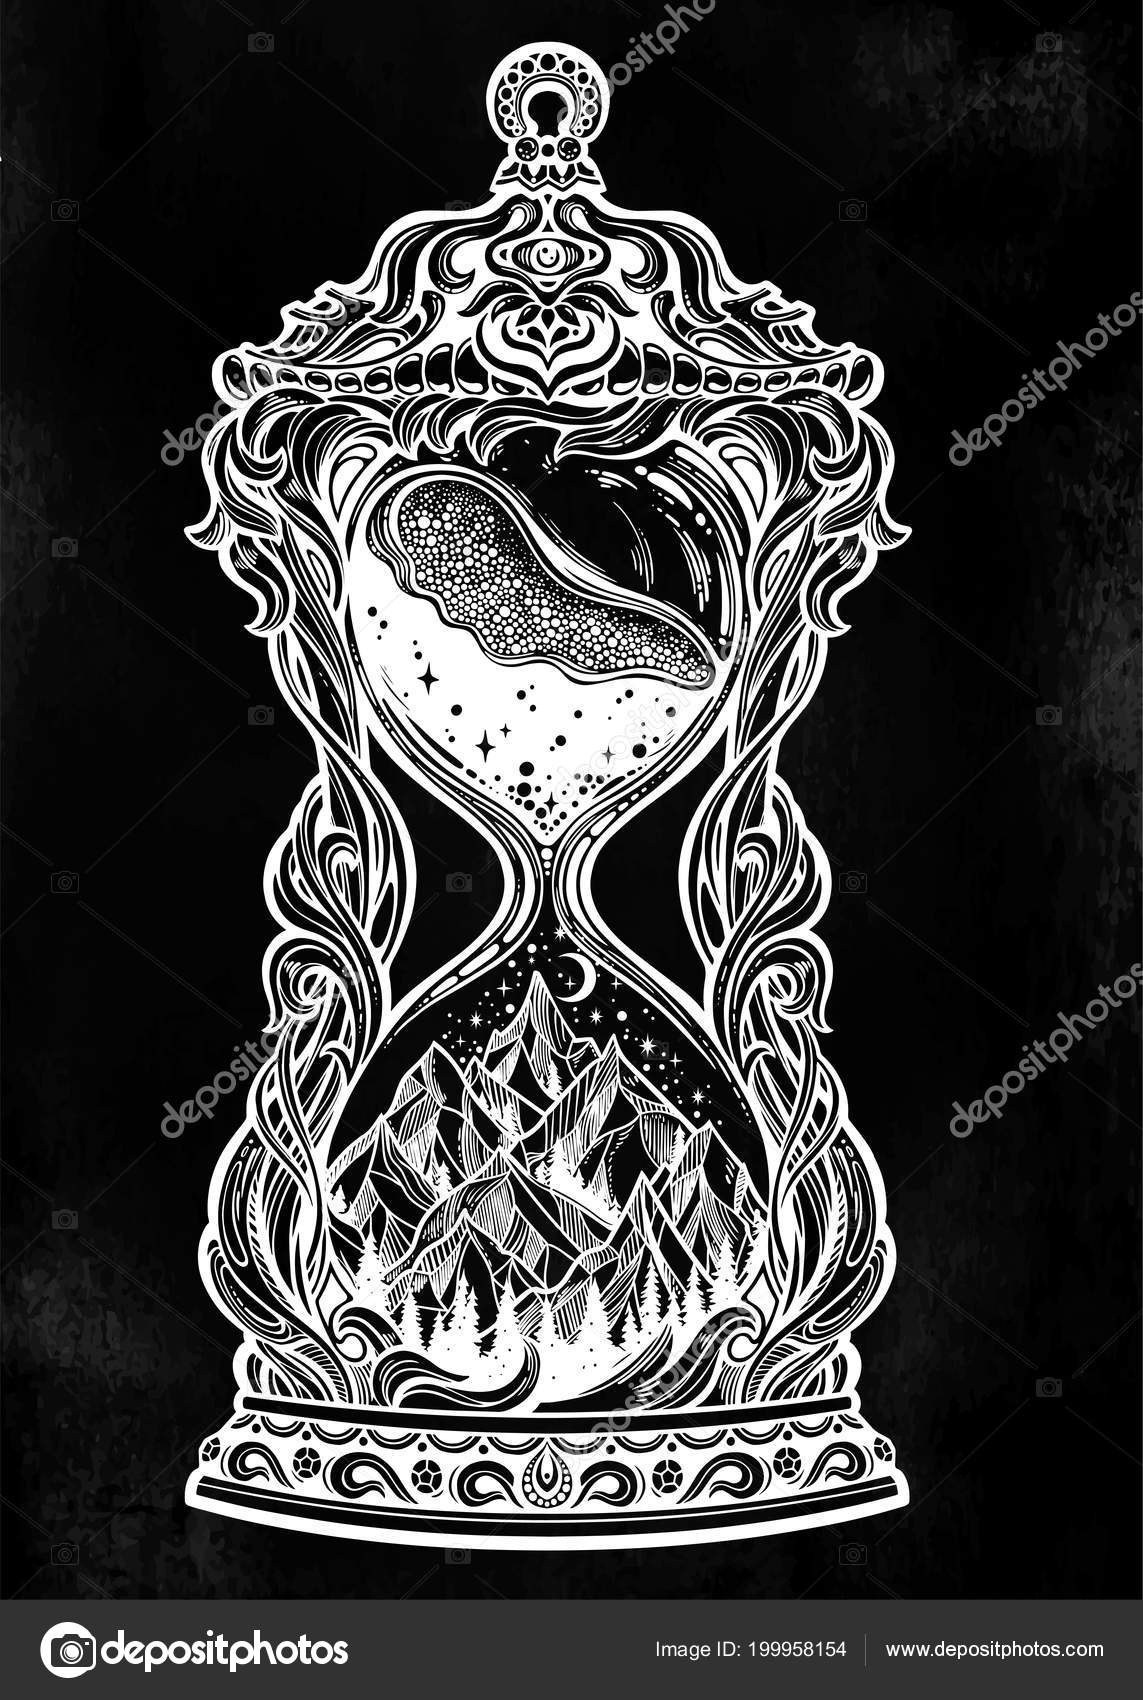 Decorative Antique Hourglass With Mountains Stars And Moon Illustration Hand Drawn Sand Clock Isolated Vector Art Time Fantasy Concept